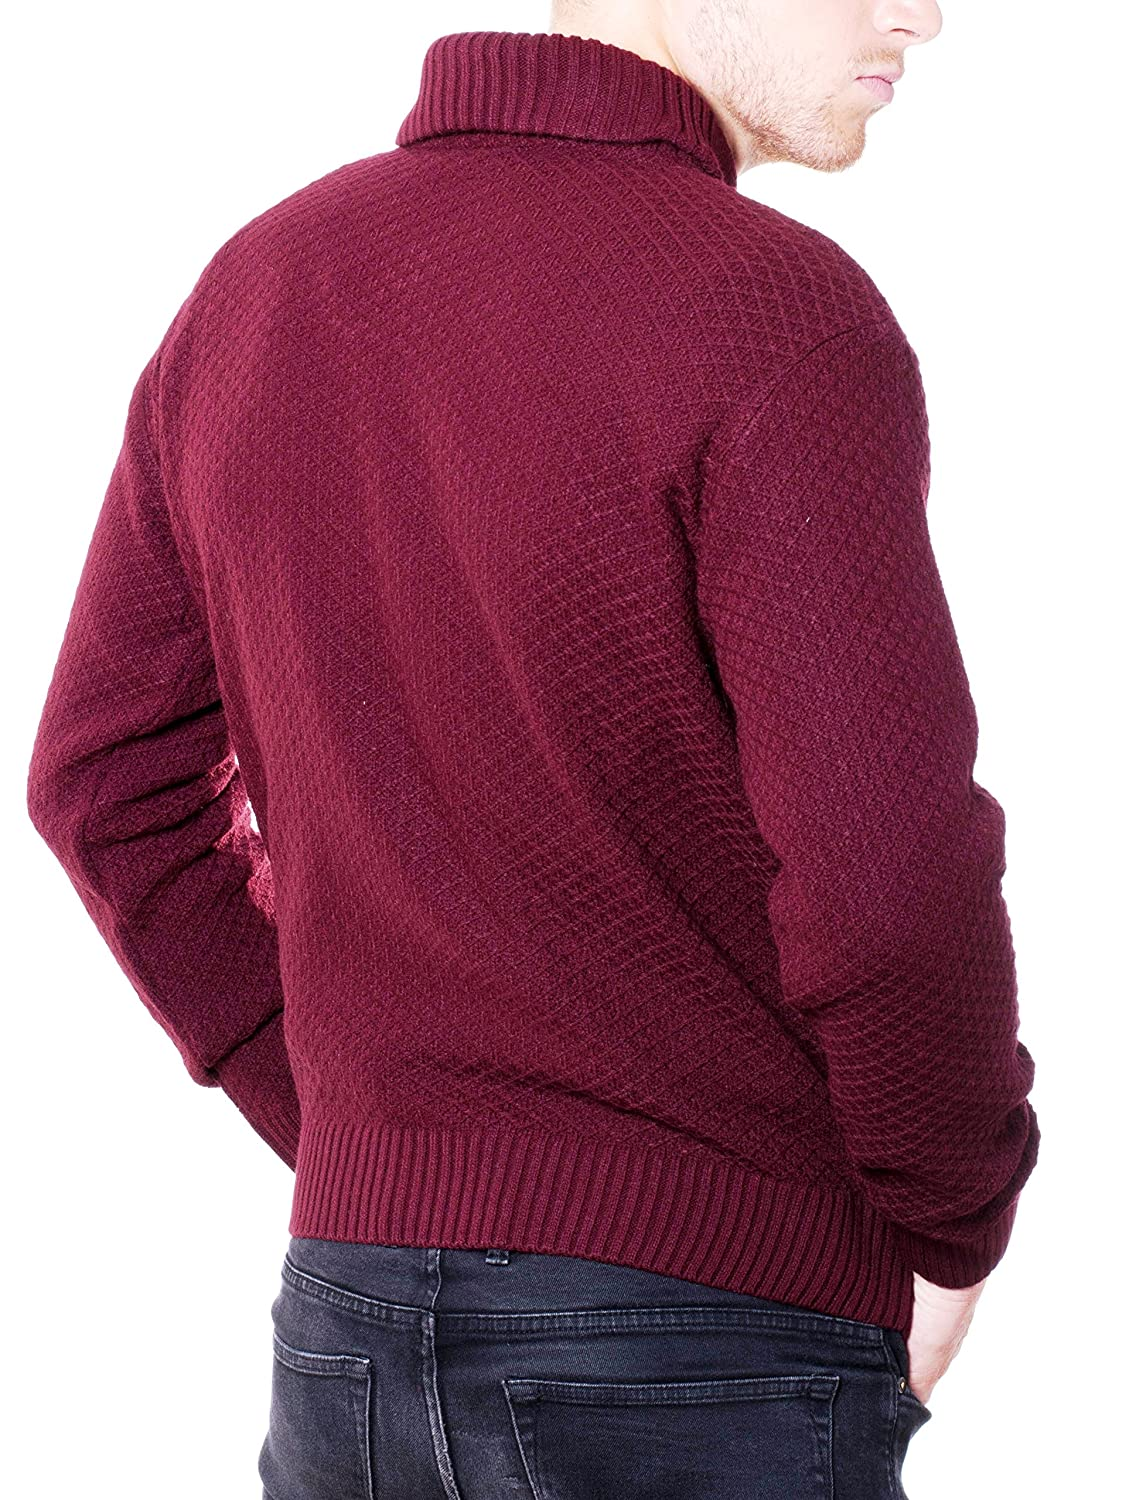 Dipuman Men's Long Sleeve Jumper multicolour multicoloured One size